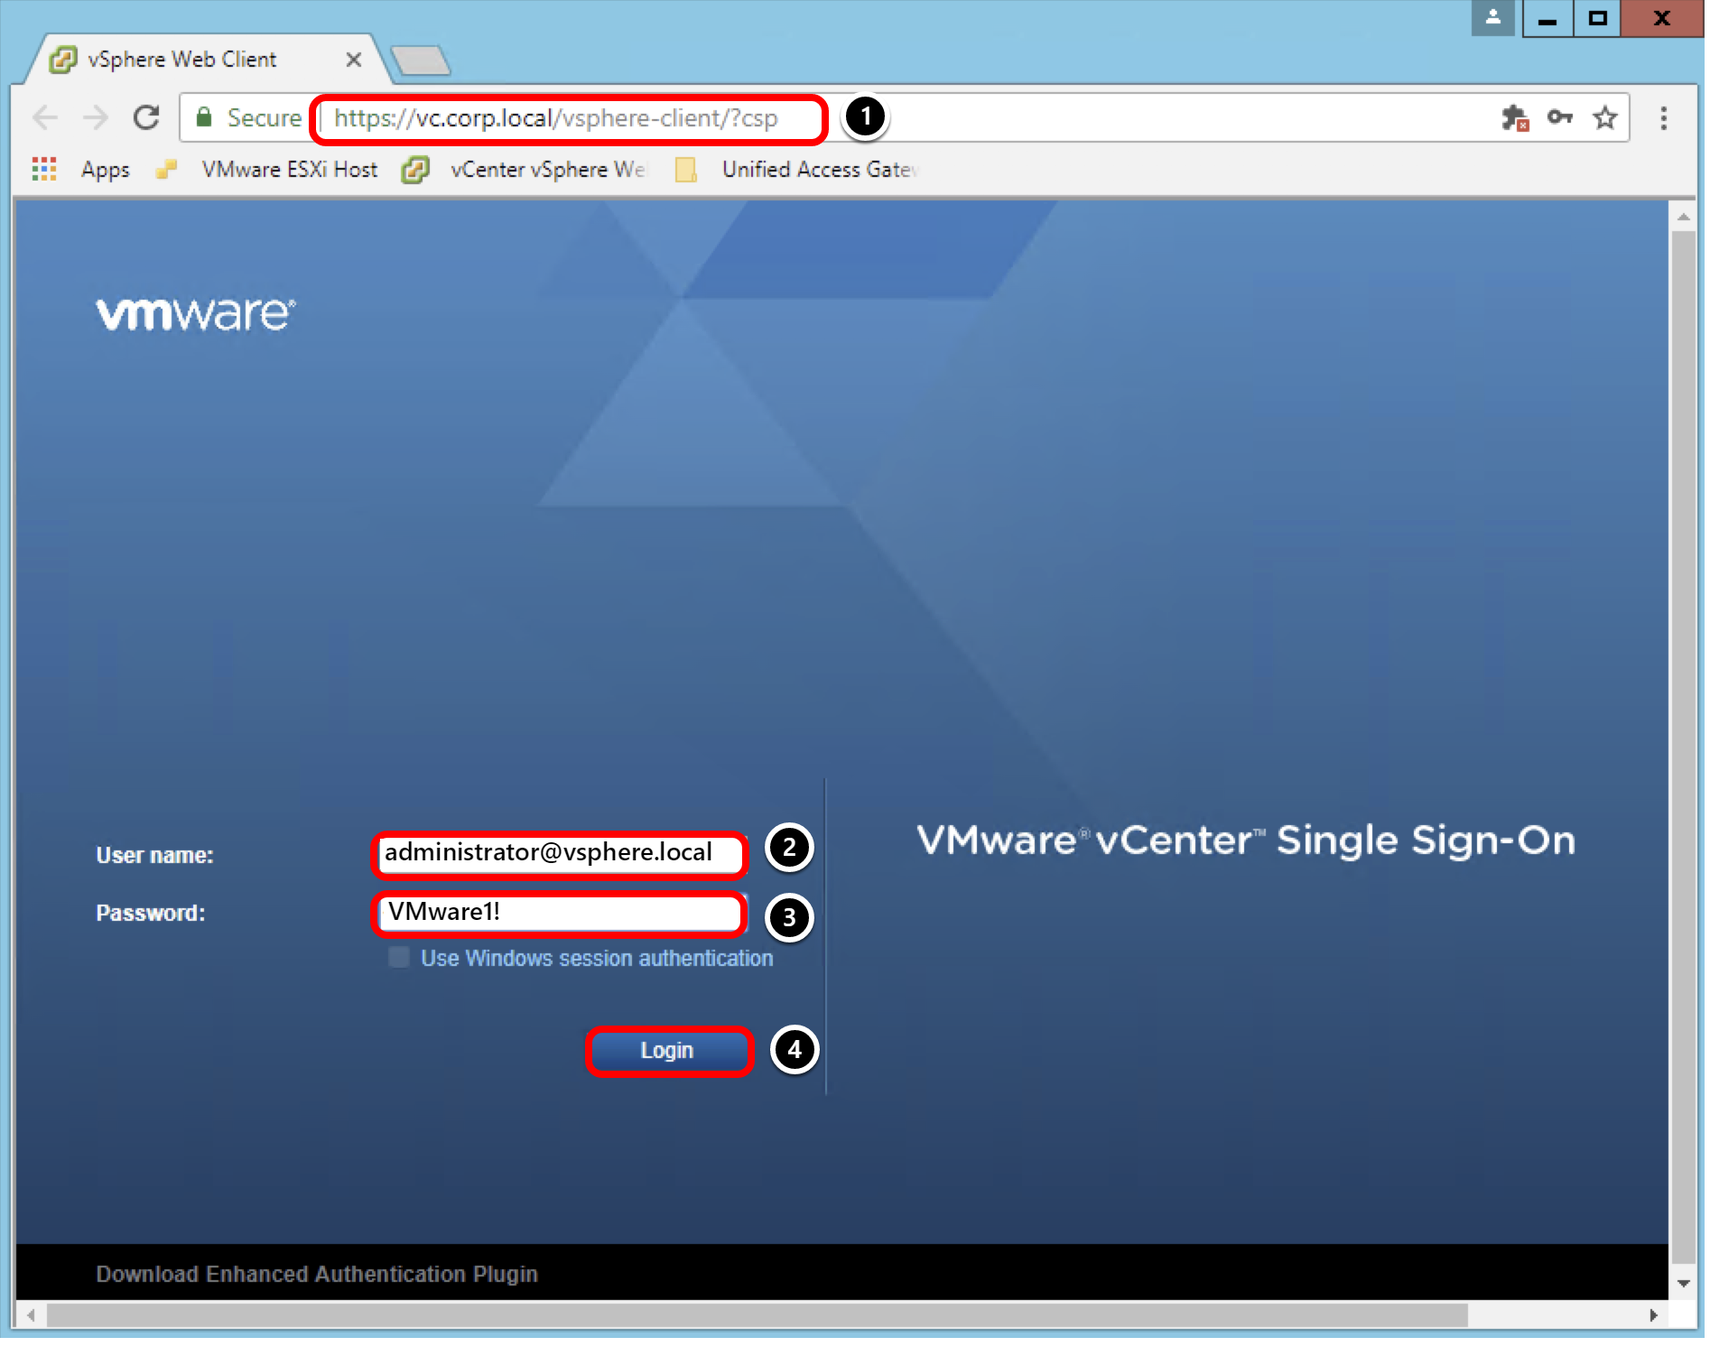 Authenticate to the vCenter vSphere Web Client